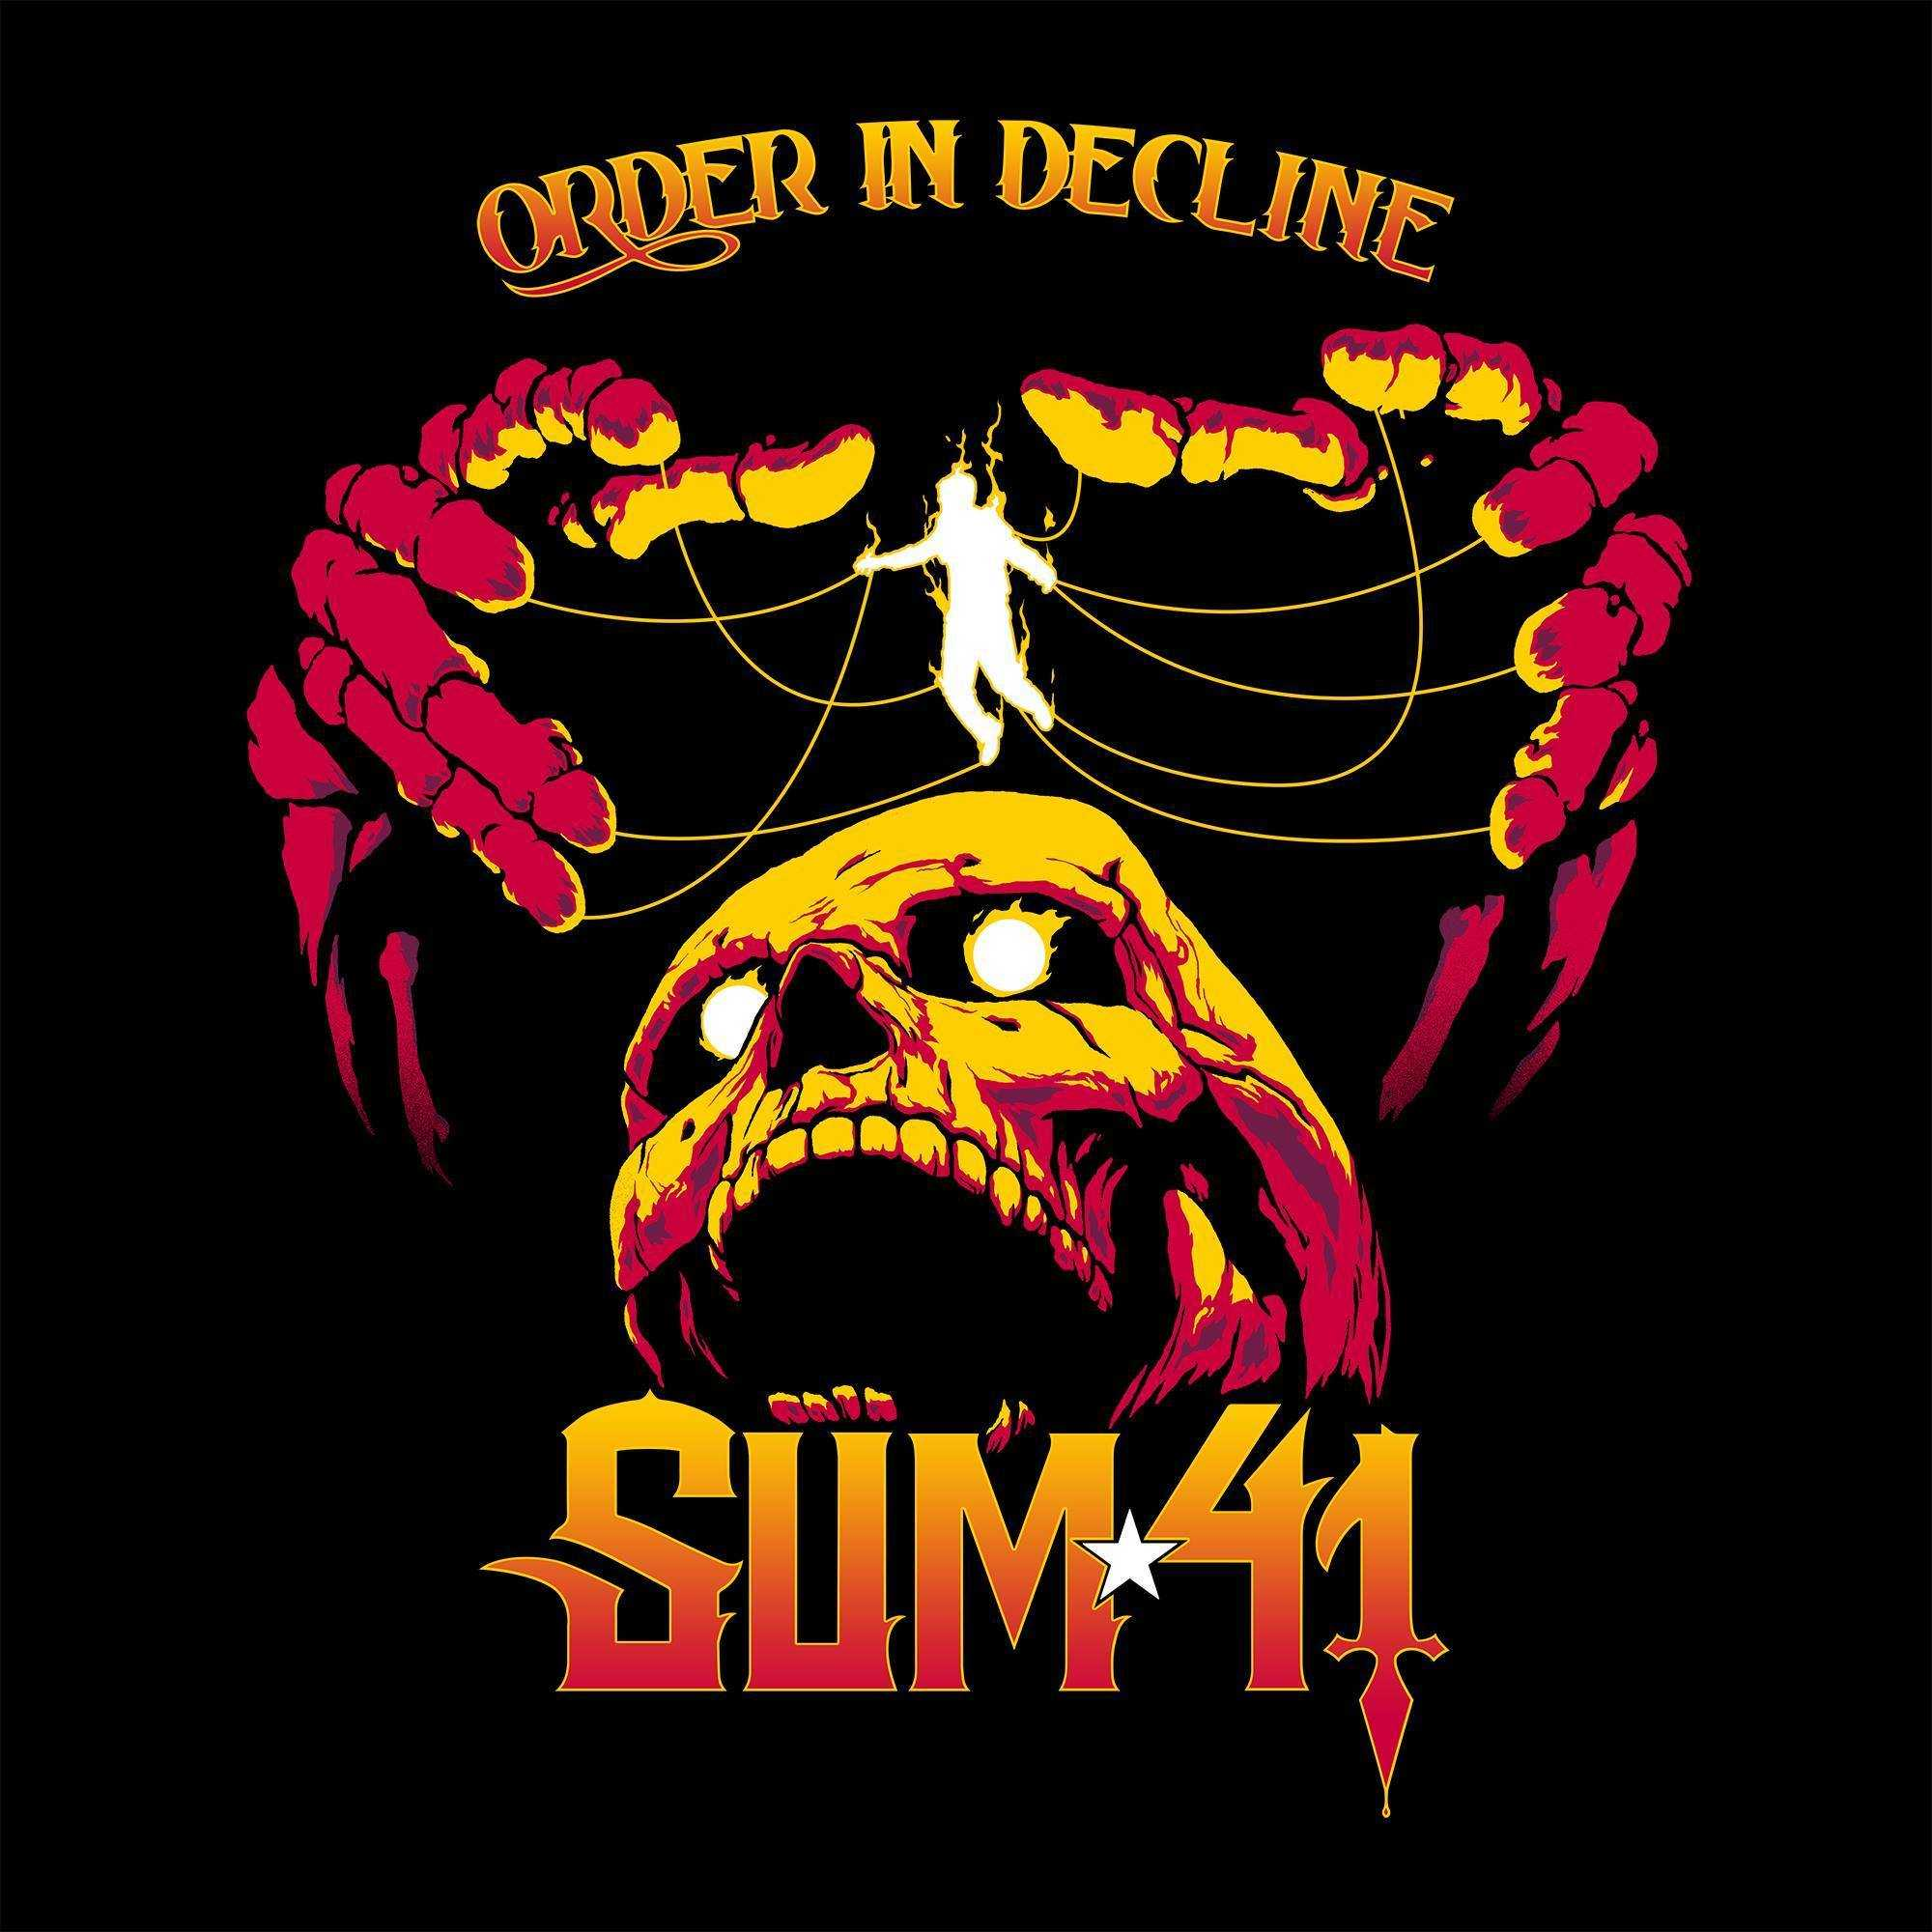 Sum 41 hold nothing back on 'Order In Decline'